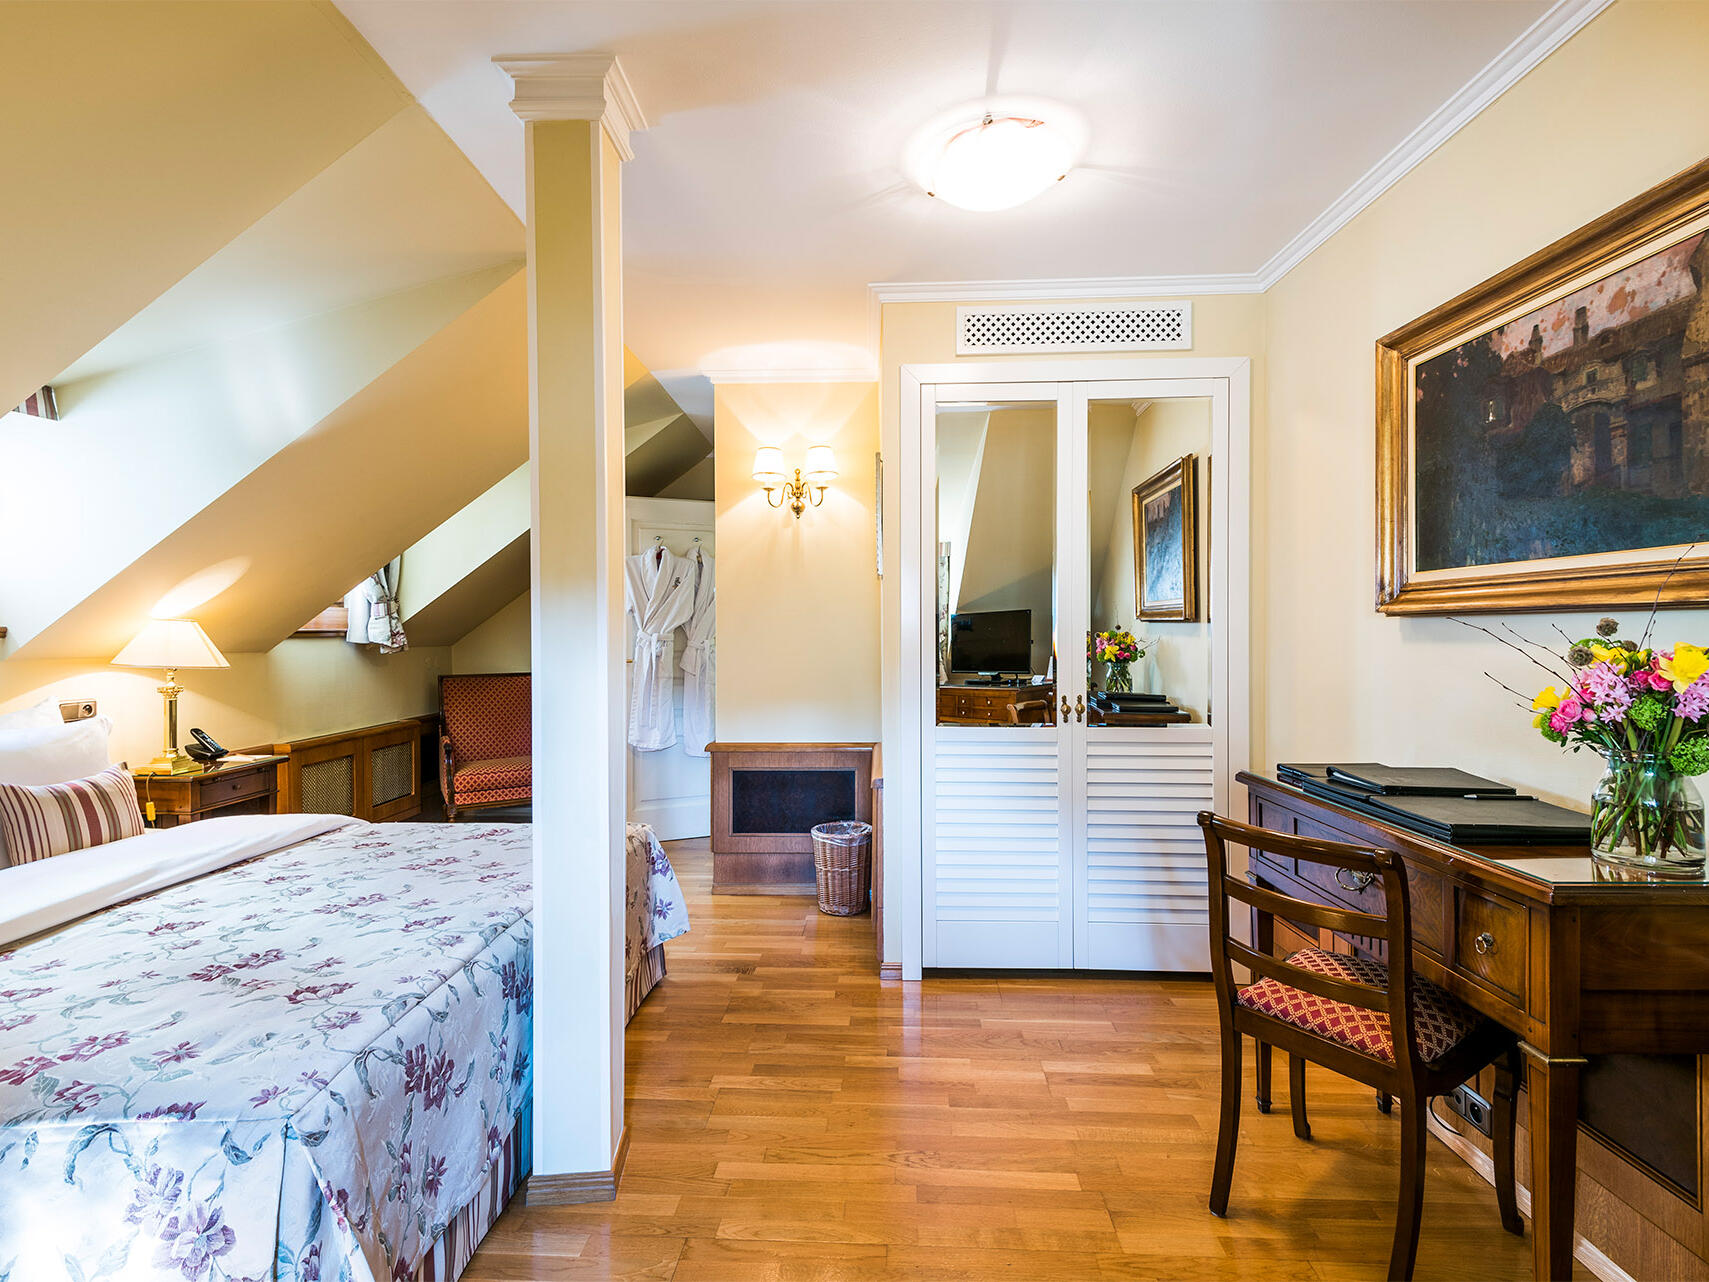 Superior Room at Golden Well Hotel in Prague